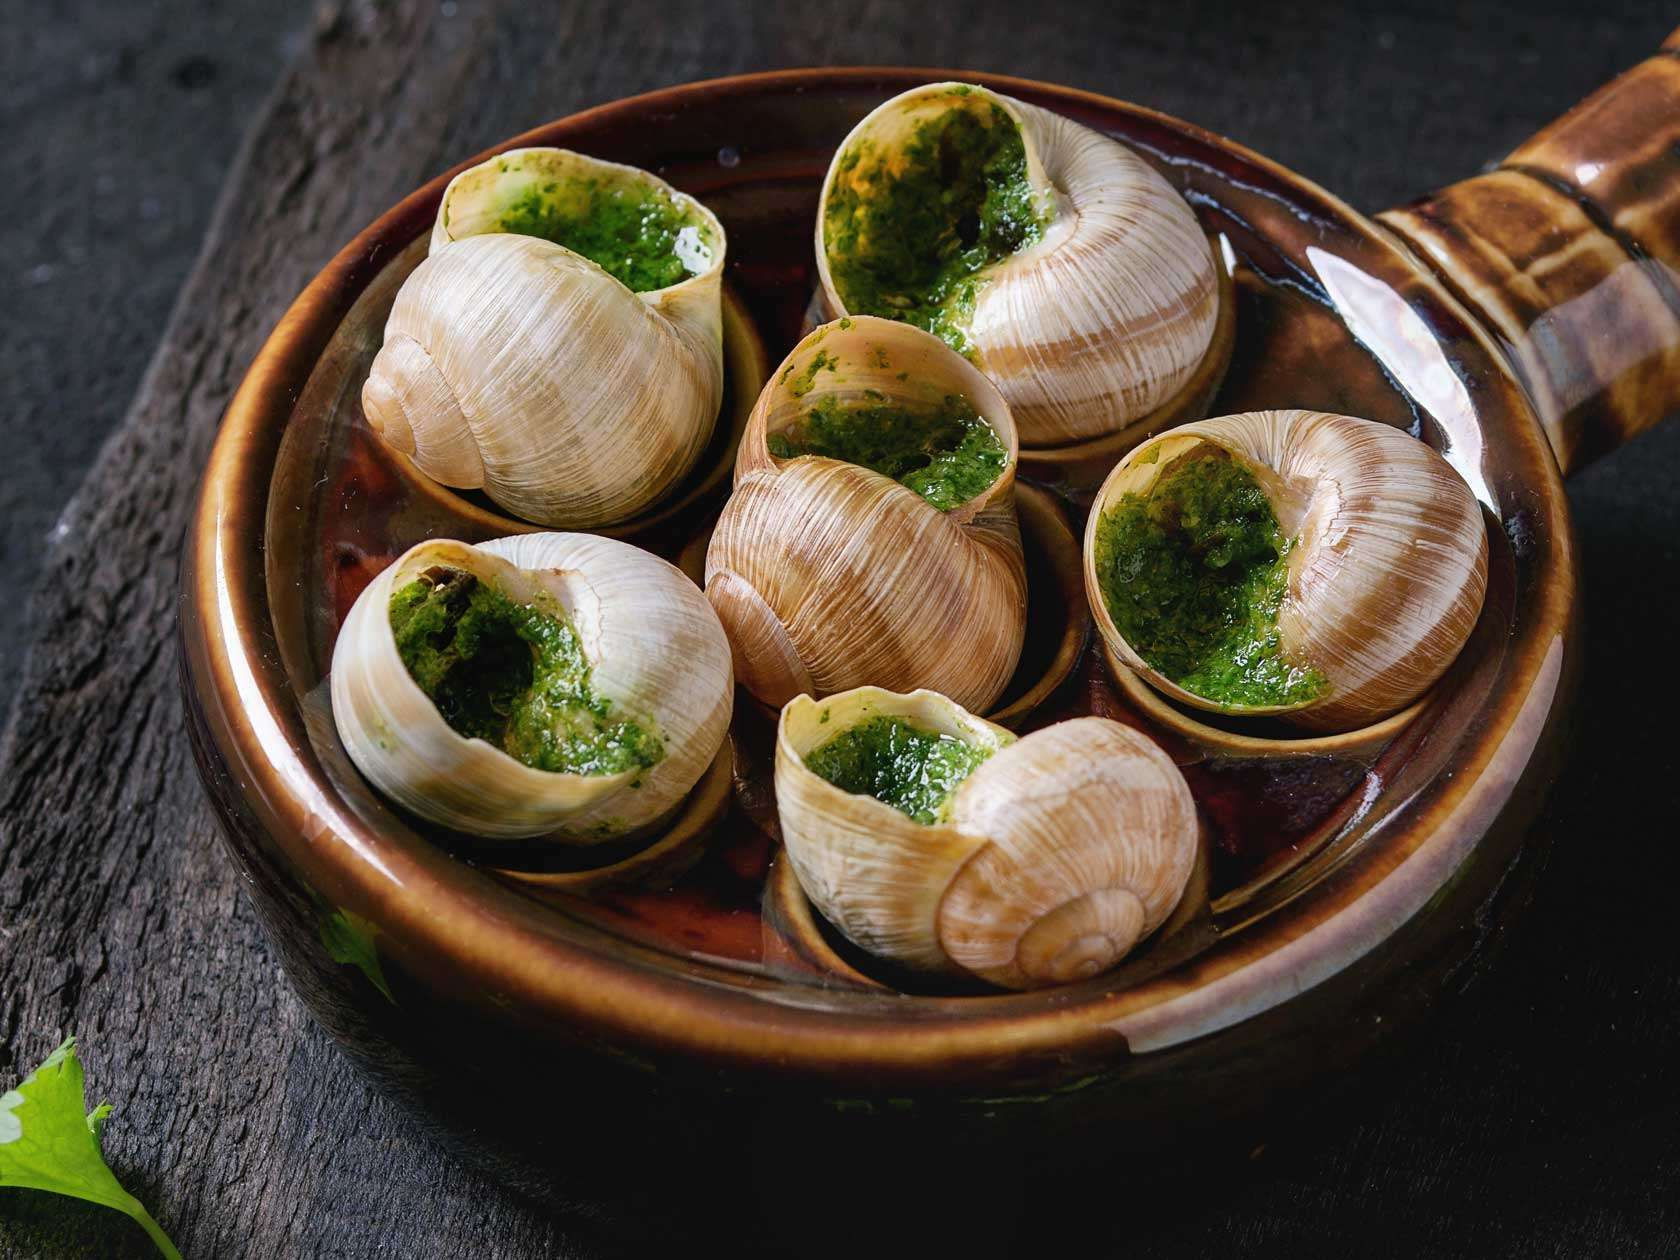 Buy French Escargots Online   Snails In Garlic Butter   The Fish Society